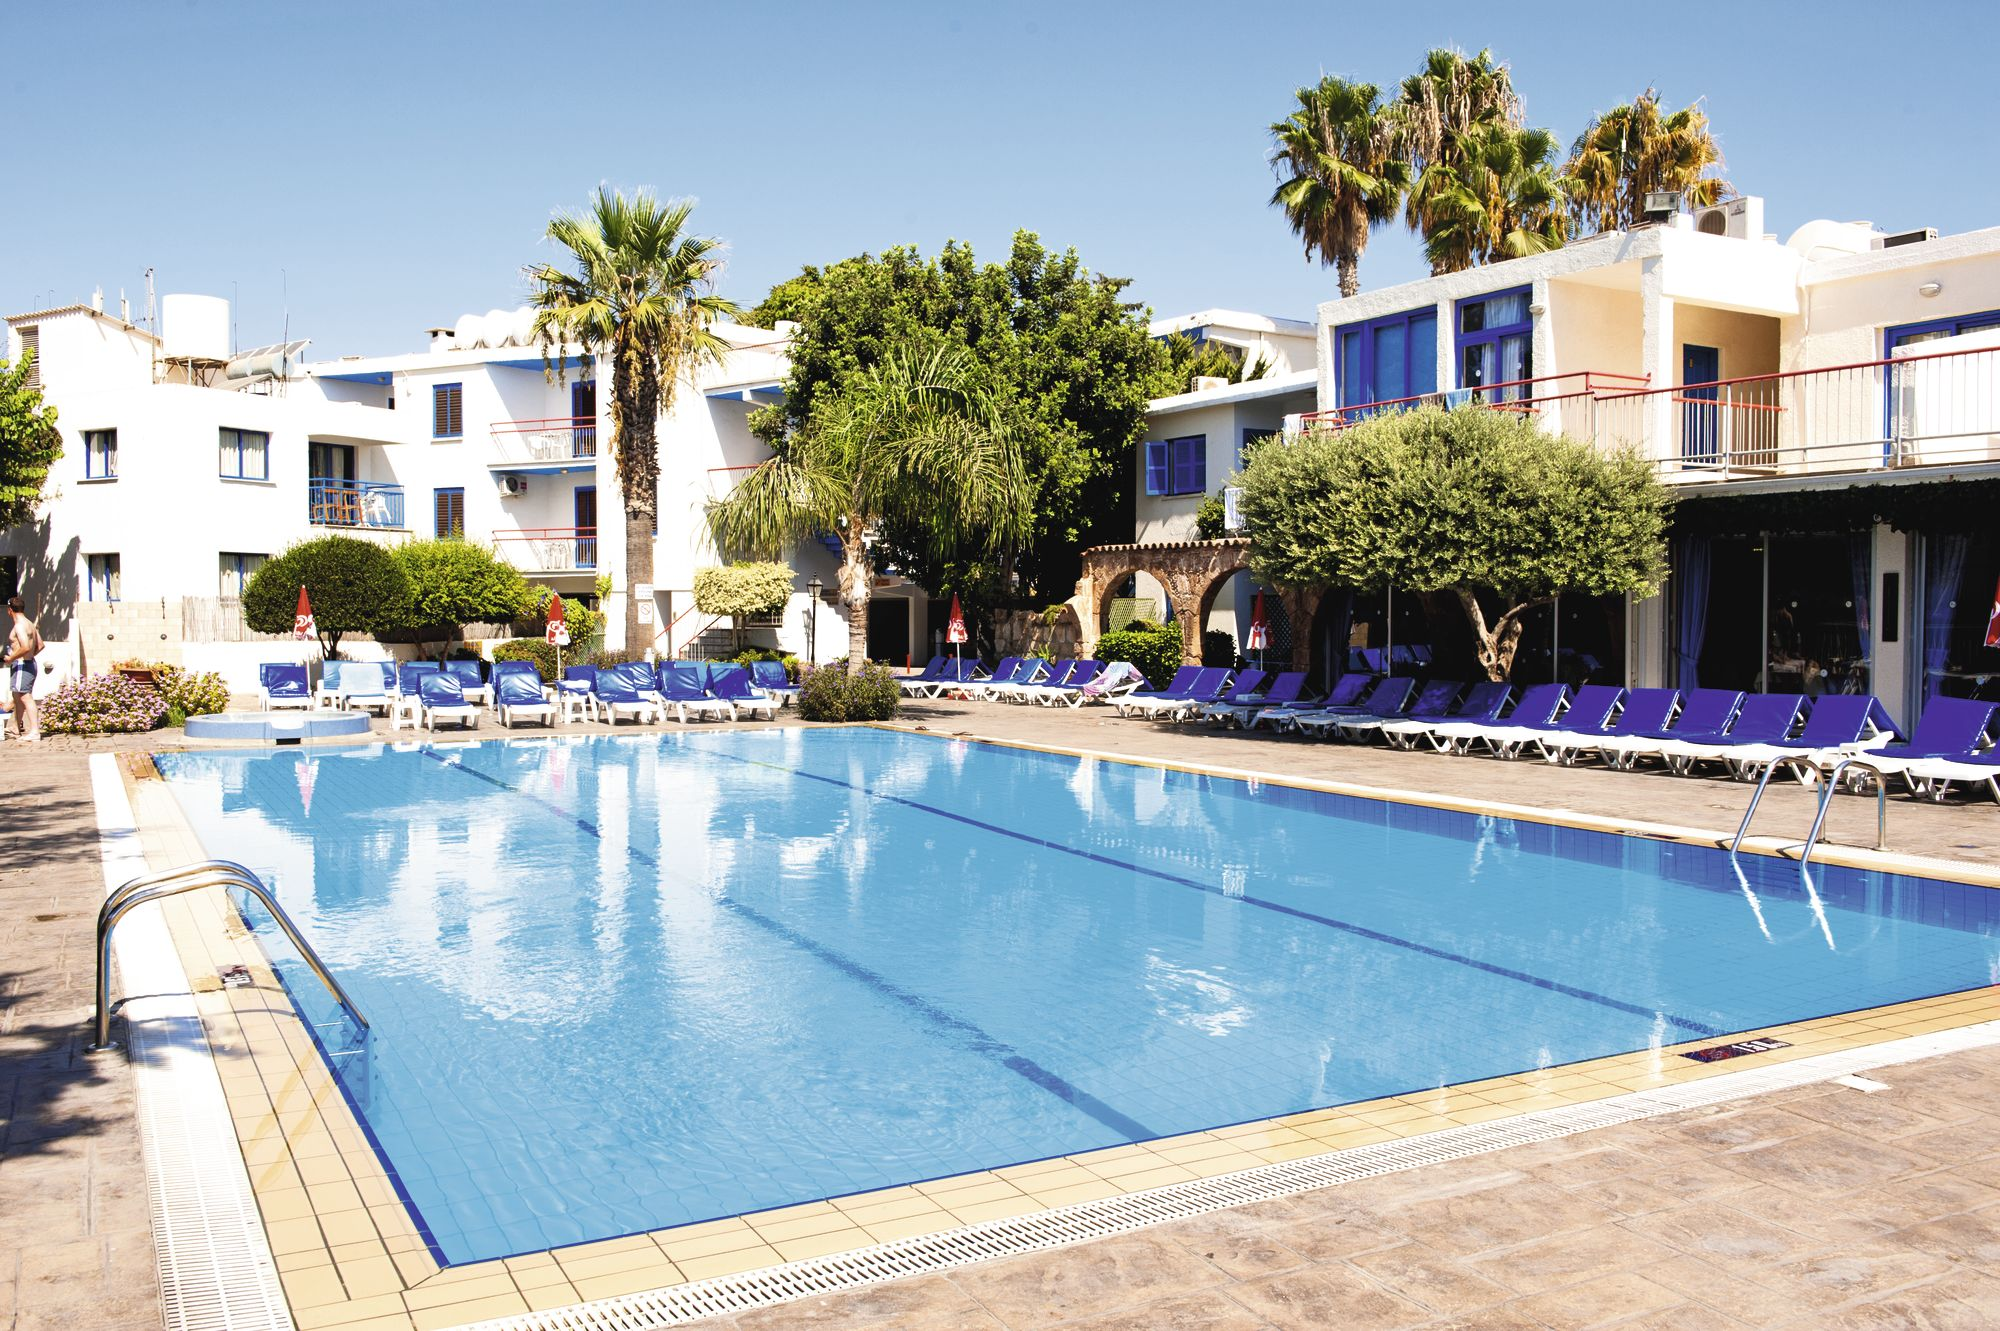 Holiday to Green Bungalows Apts in AYIA NAPA (CYPRUS) for 4 nights (SC) departing from gatwick on 29 Sep